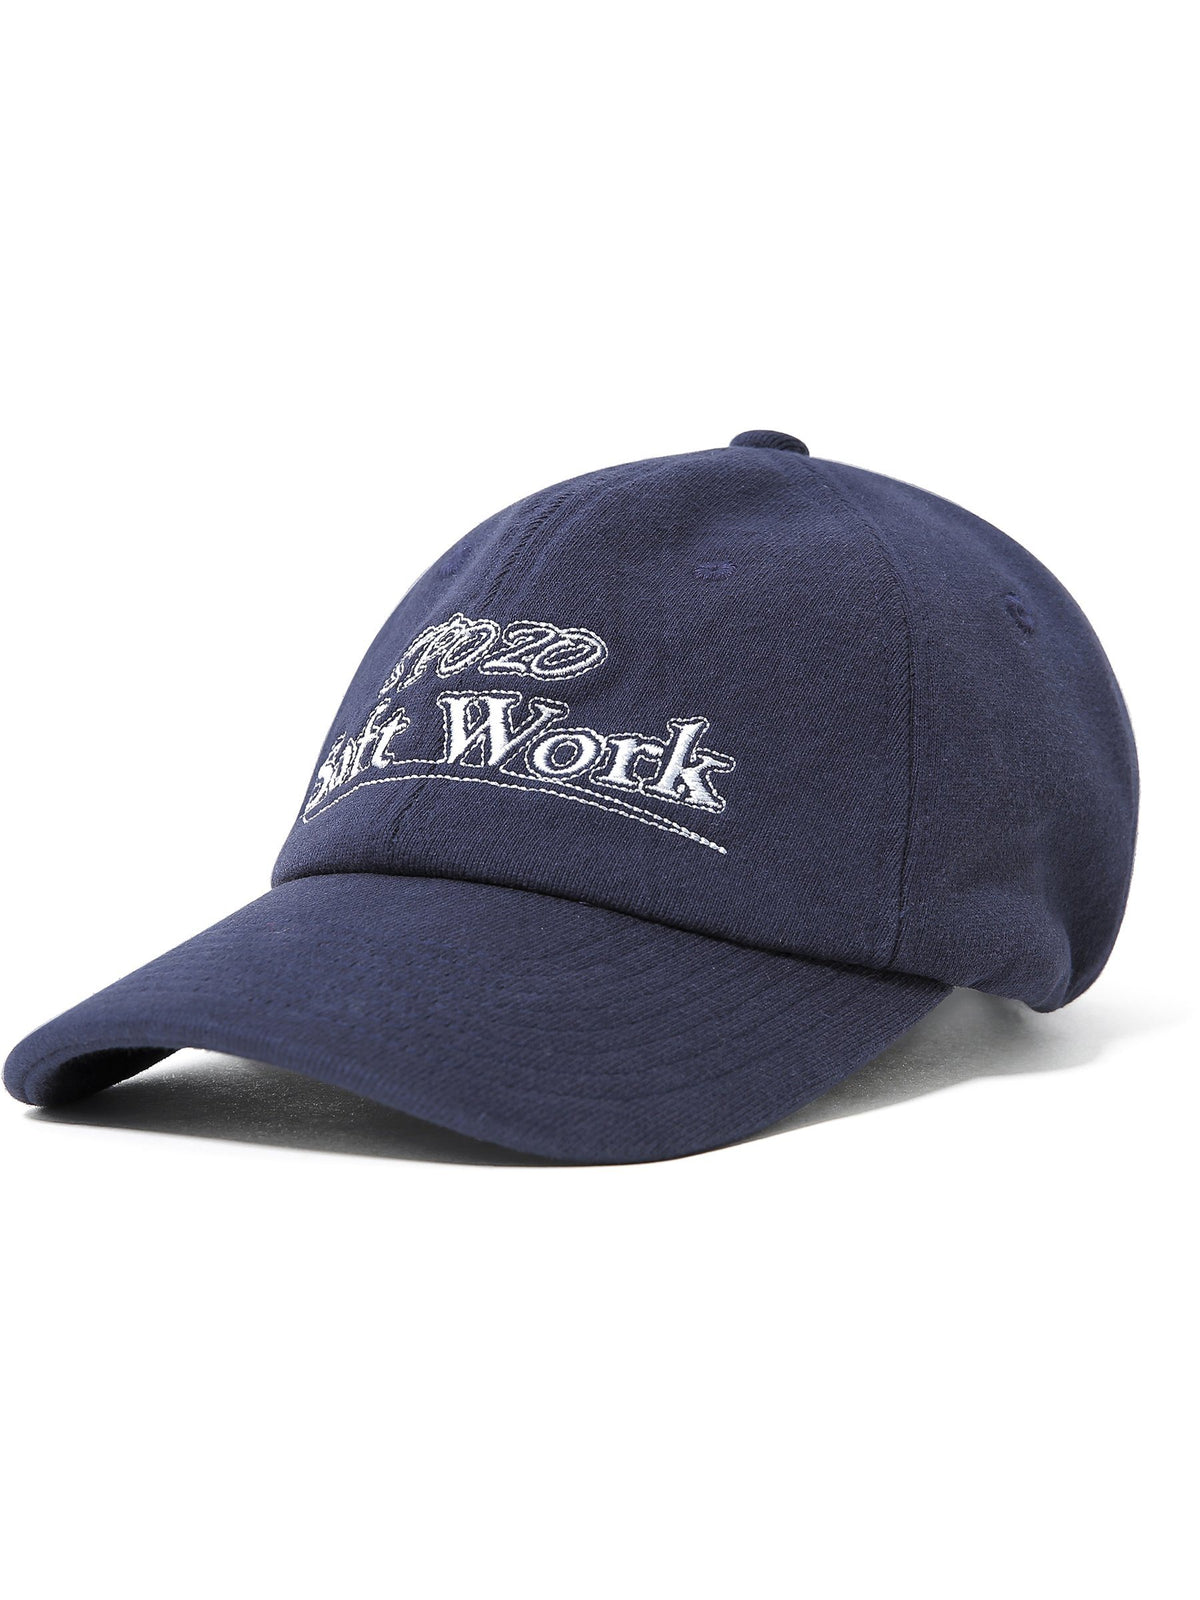 SOFT WORK Jersey Cap - thisisneverthat